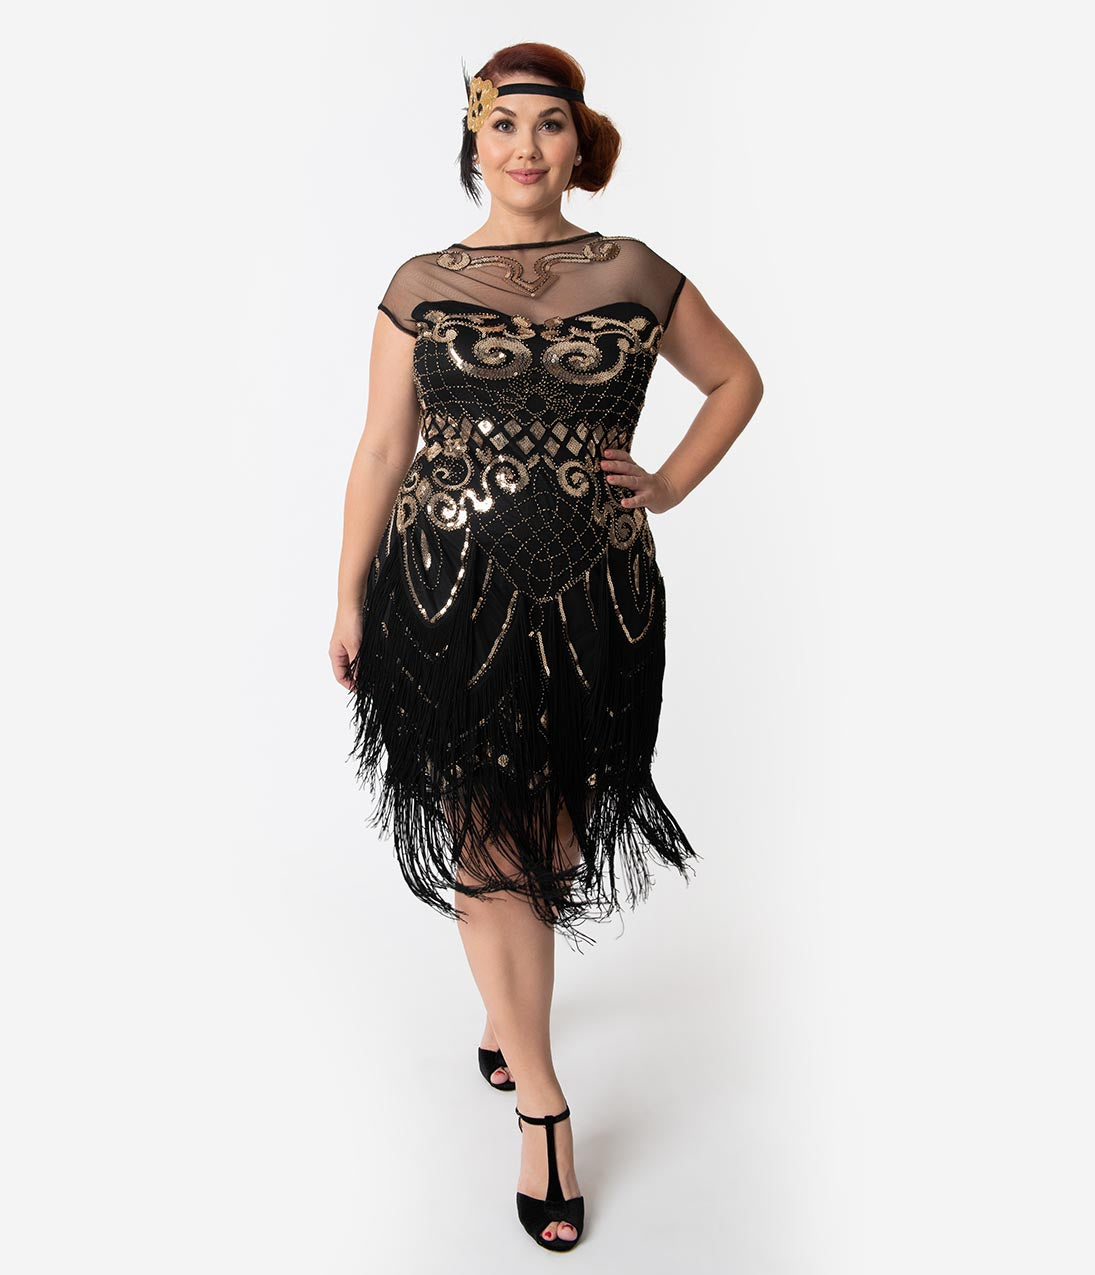 e14337dc96 Unique Vintage Plus Size 1920s Black & Gold Sequin Fringe Zulla Flapper  Dress